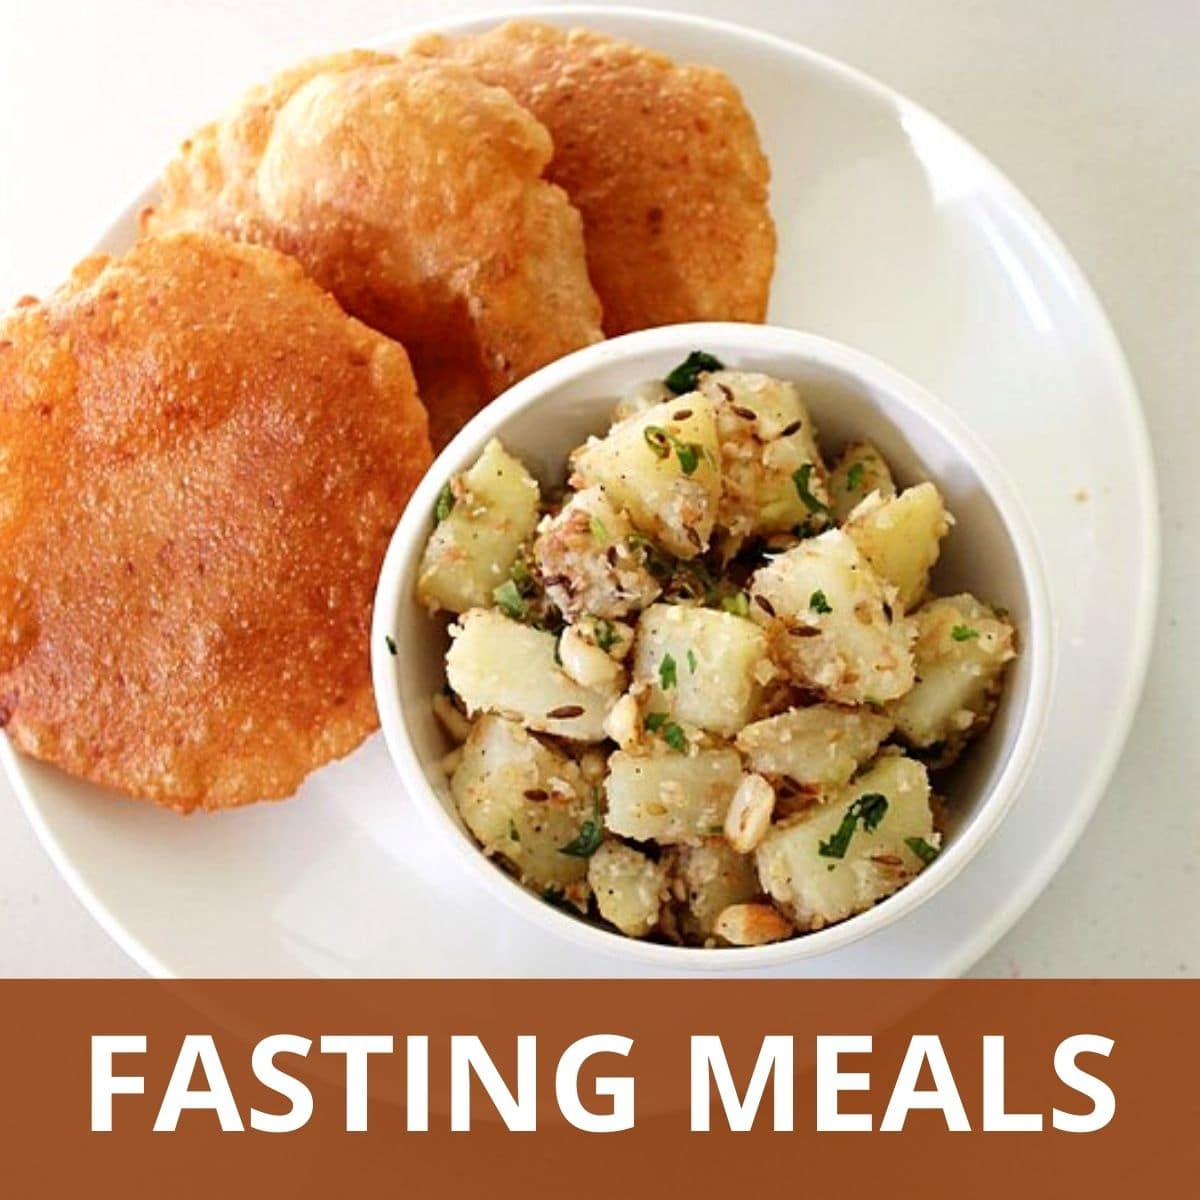 Fasting Meals